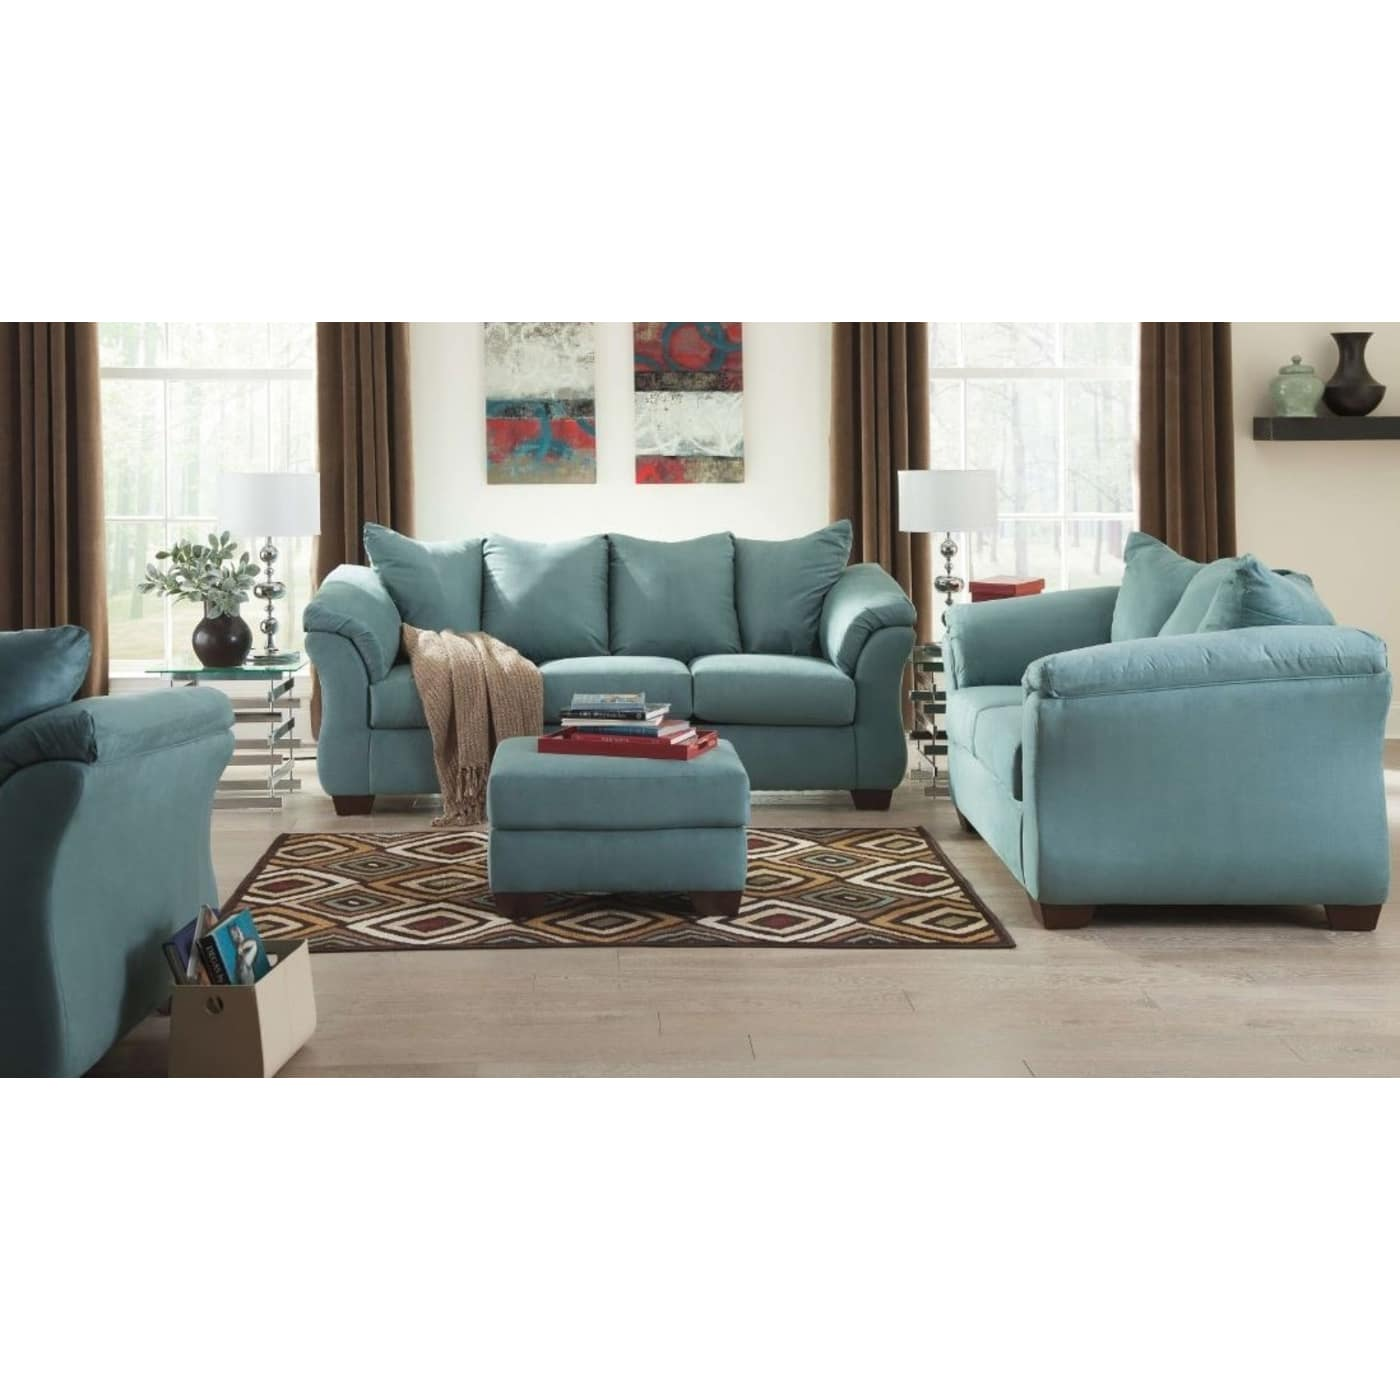 Ashley Furniture 14 Piece Package: Signature Design By Ashley Darcy Sky 4 Piece Living Room